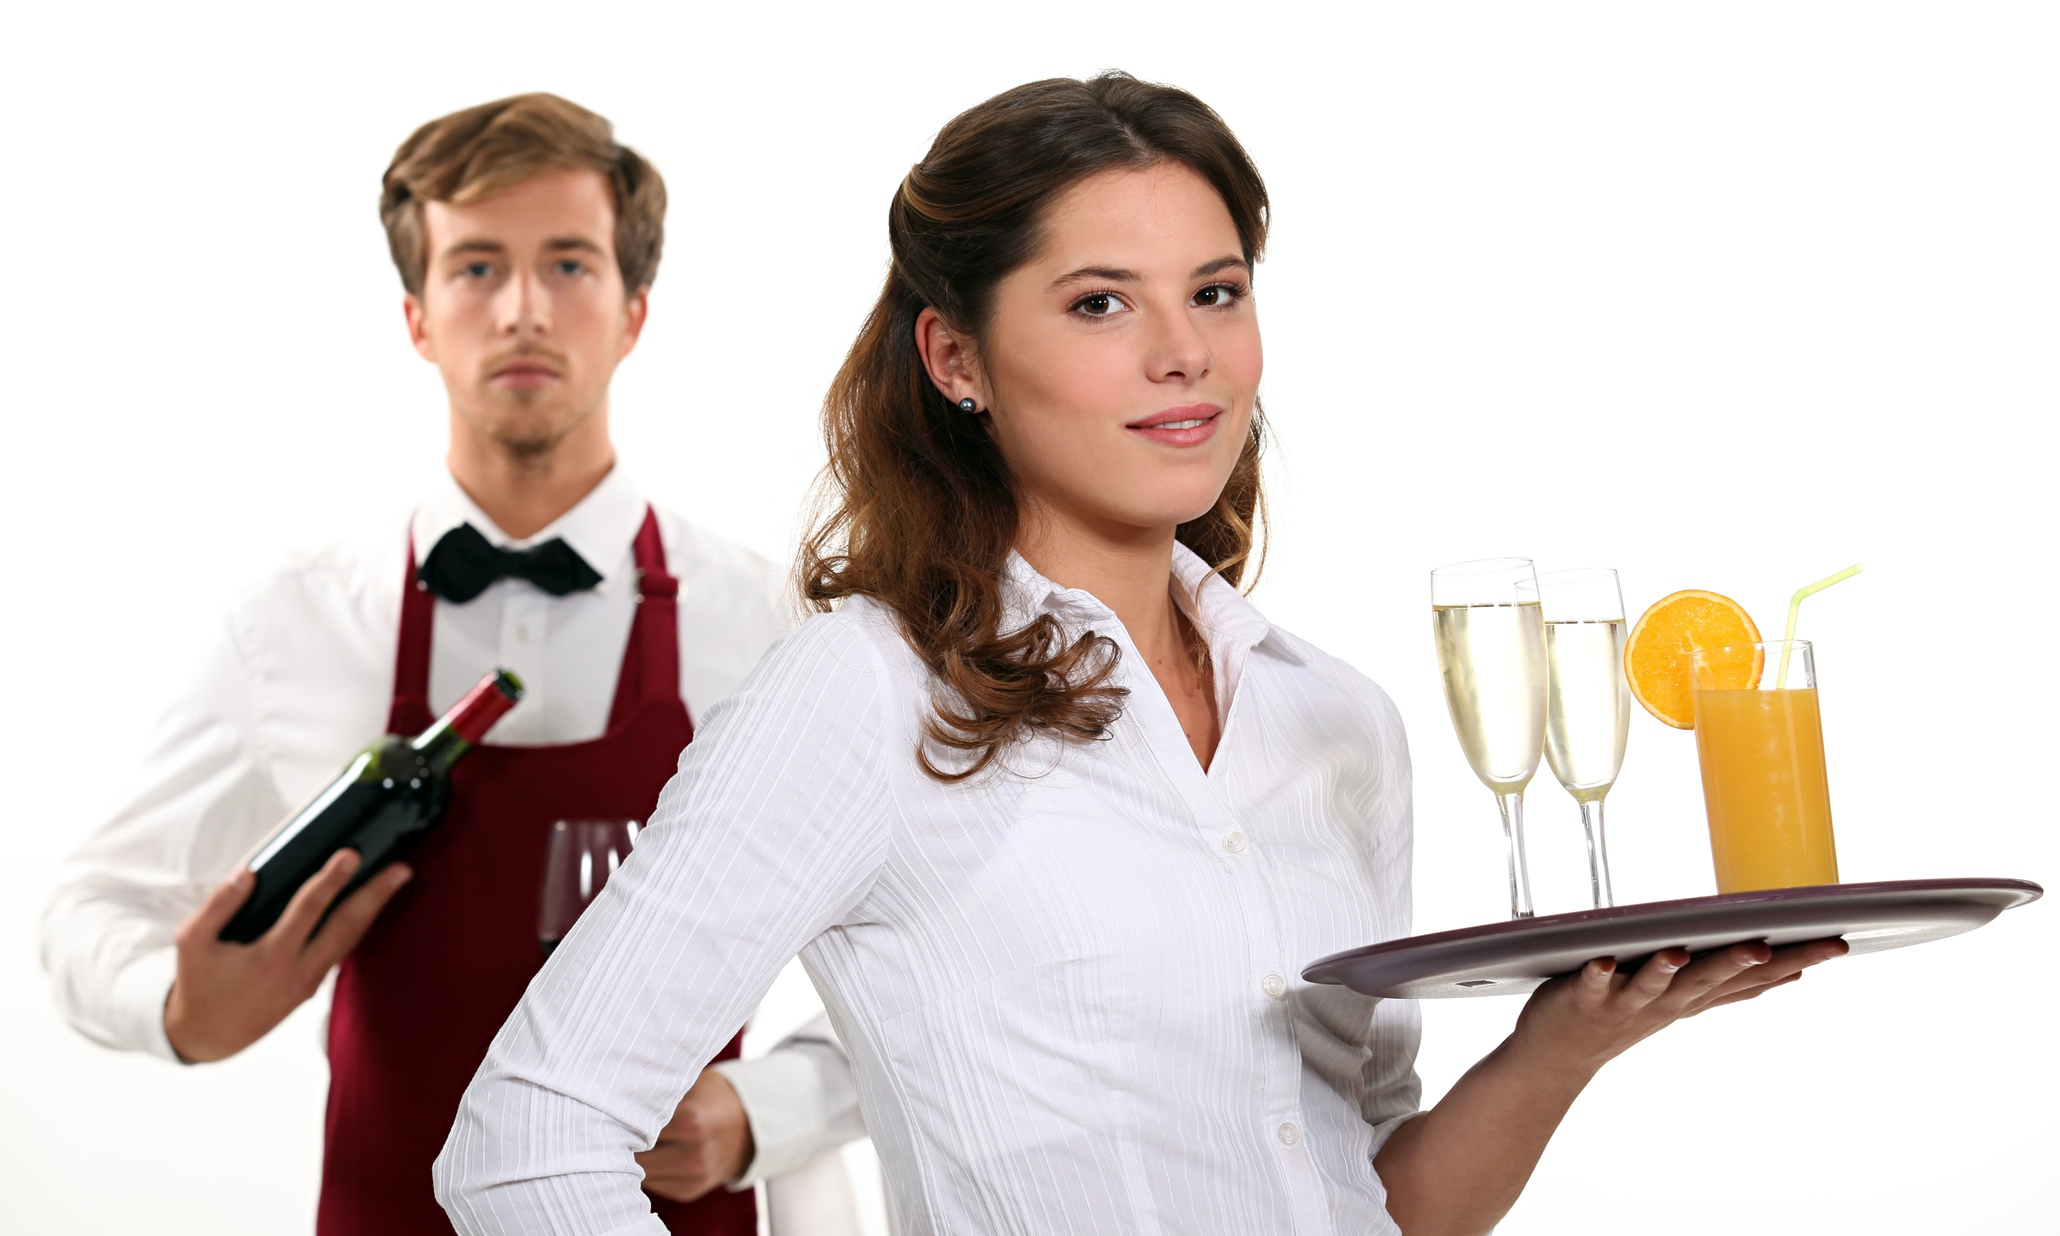 How To Be A Good Hostess For A Restaurant